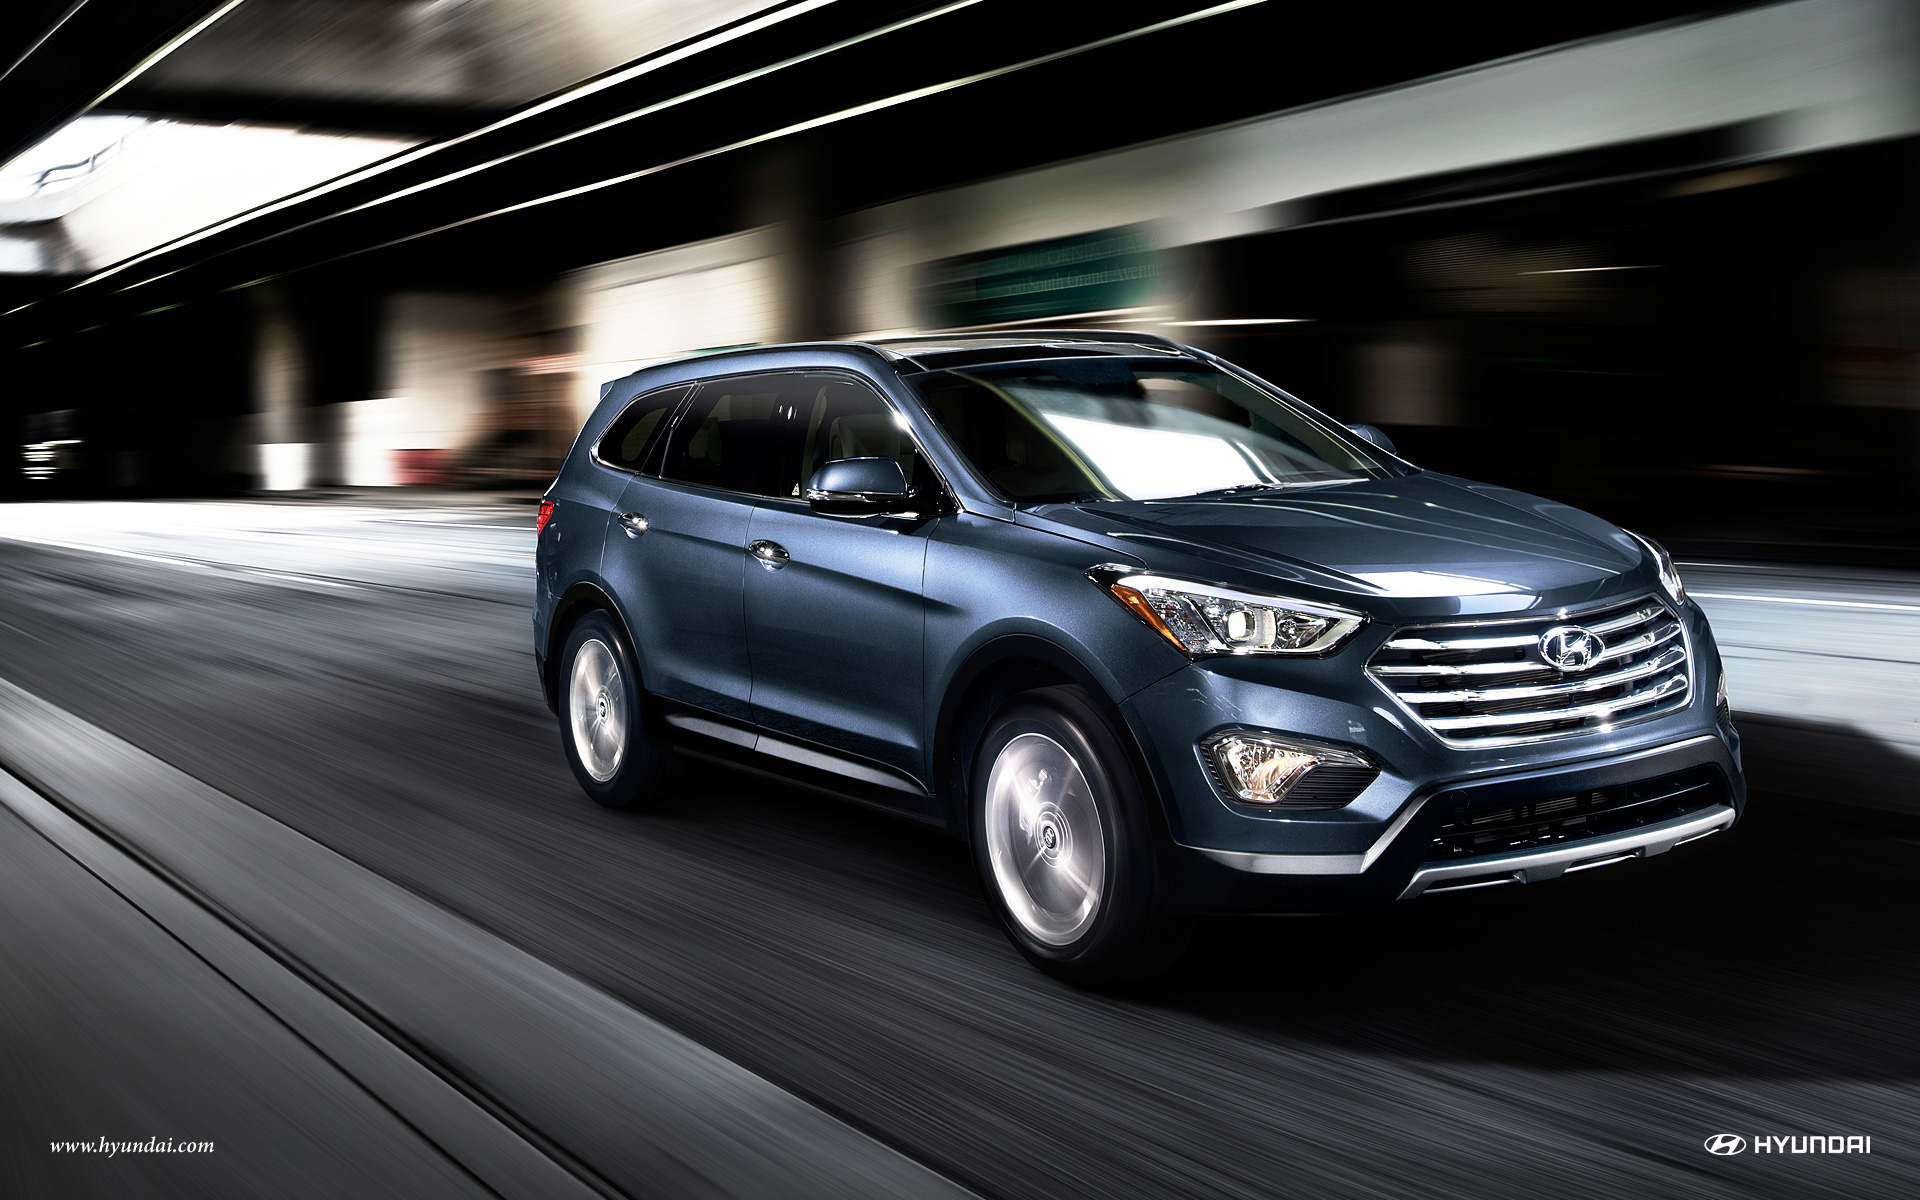 sale htm new tucson lease ext molten silver near ga marietta kennesaw atlanta hyundai for